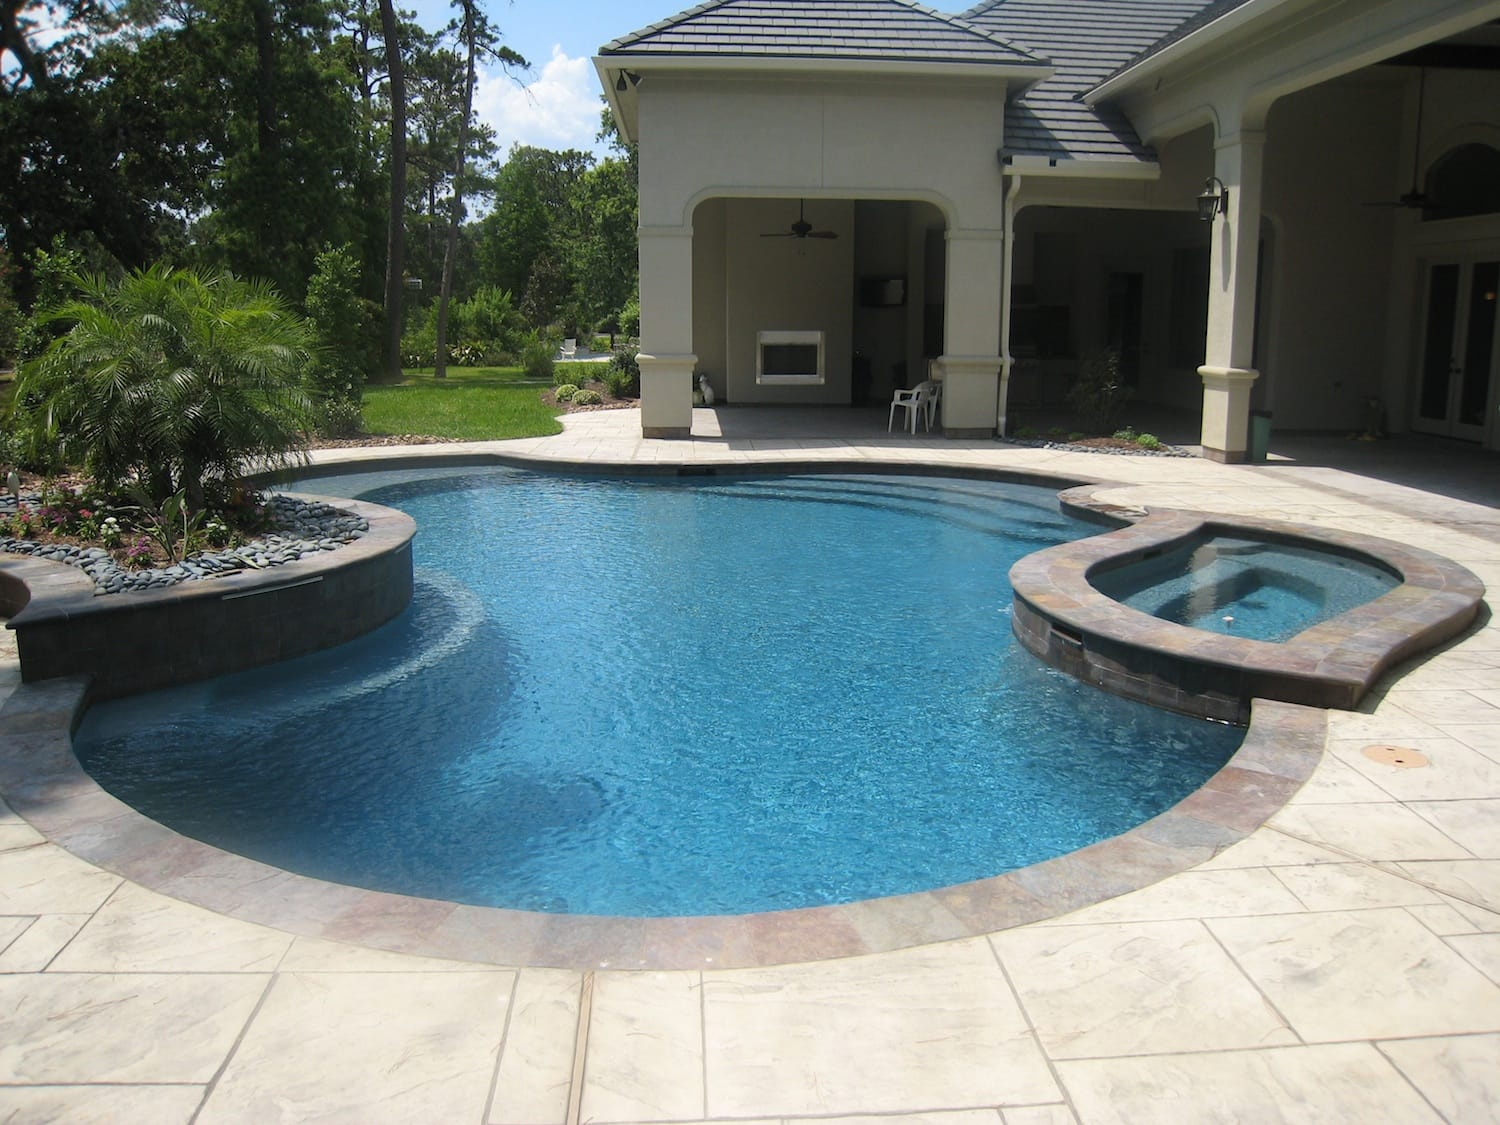 satin-matrix-antigua-pool-finish-10